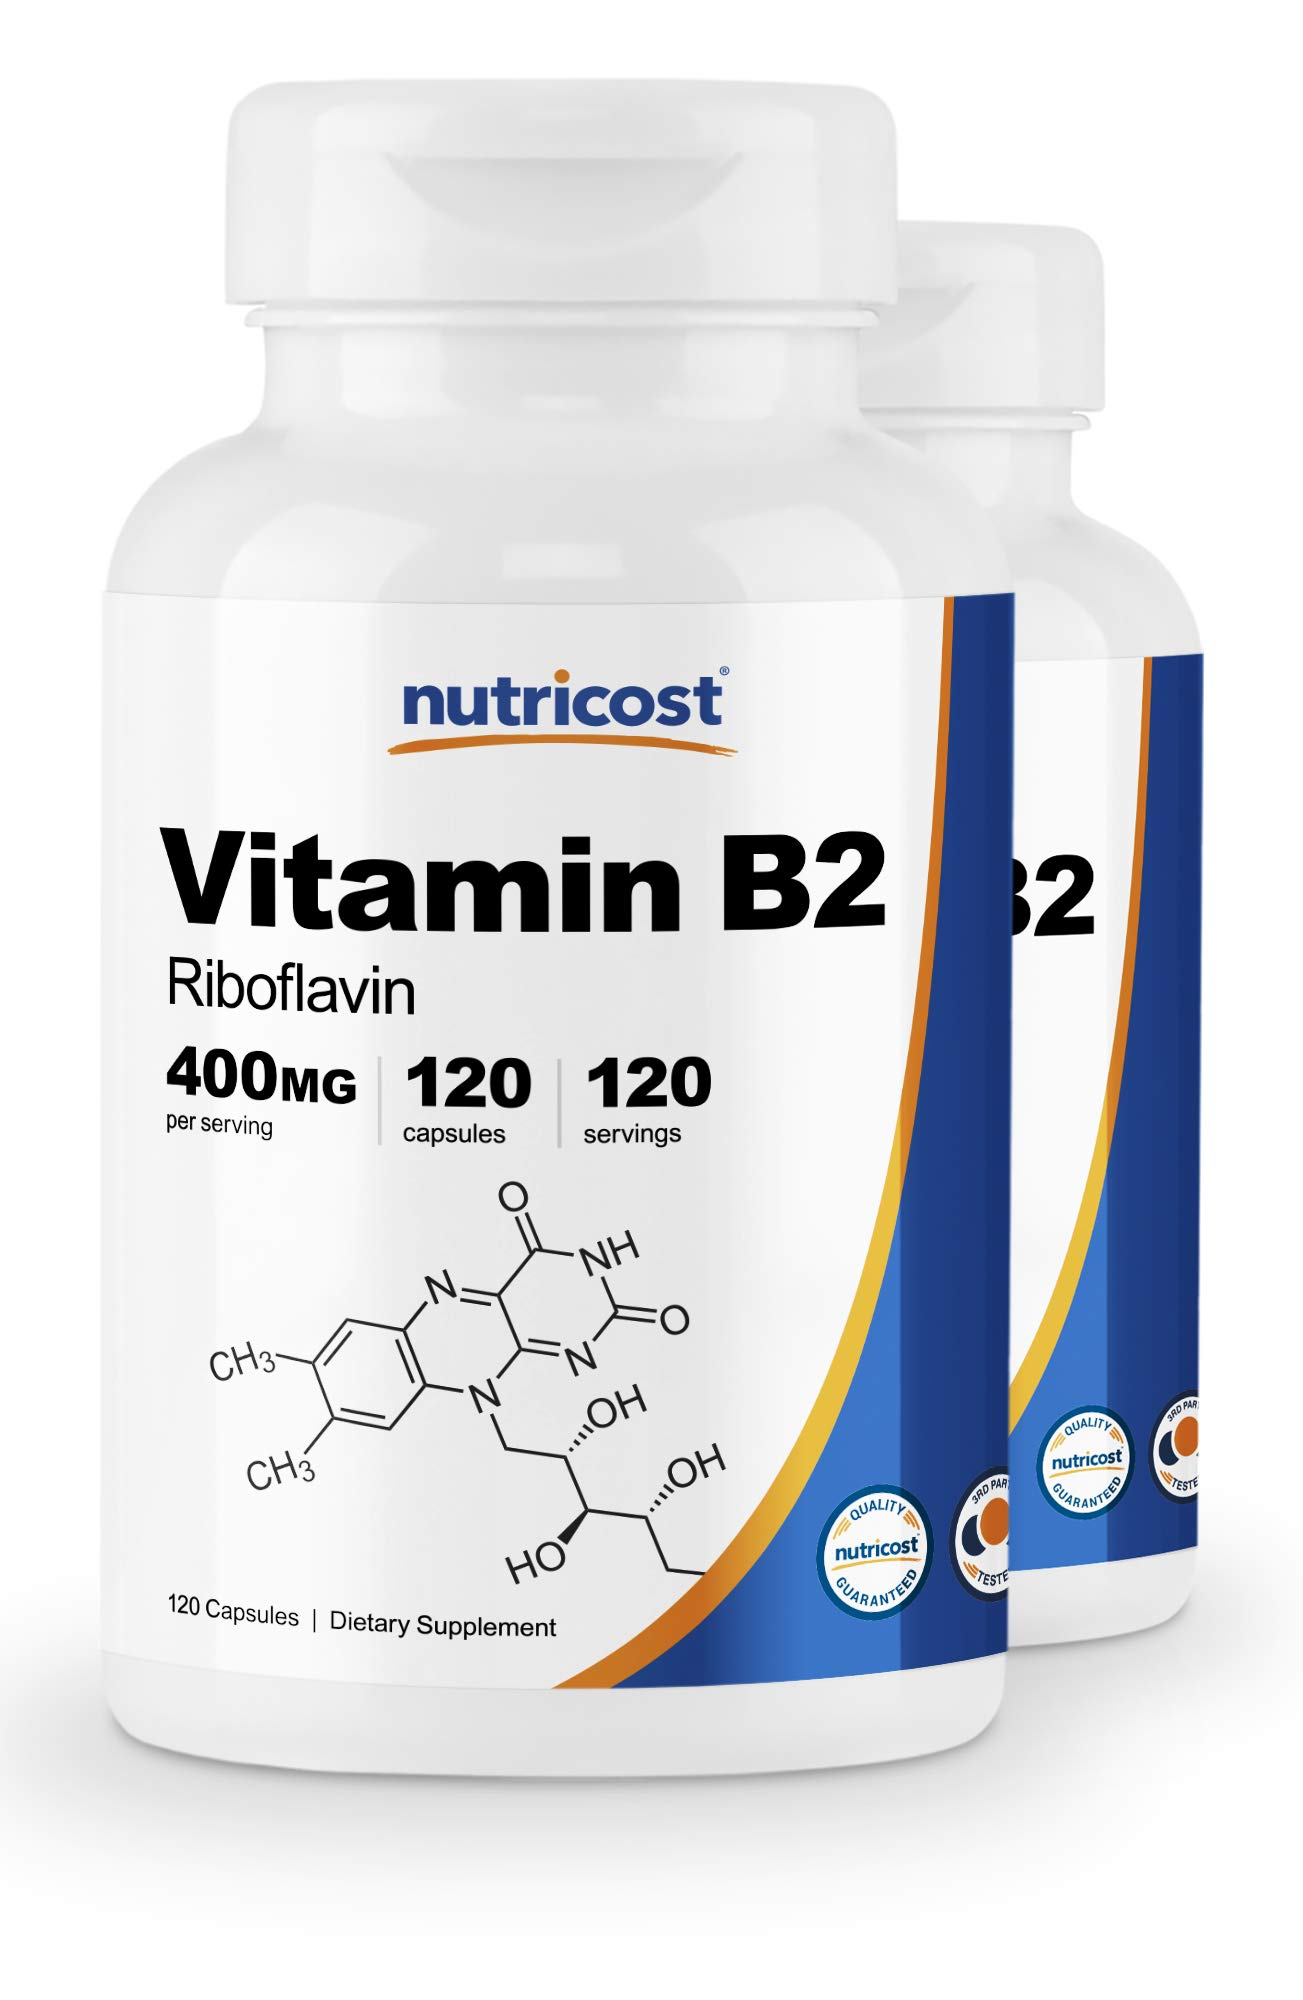 Nutricost Vitamin B2 (Riboflavin) 400mg, 120 Capsules (2 Bottles) by Nutricost